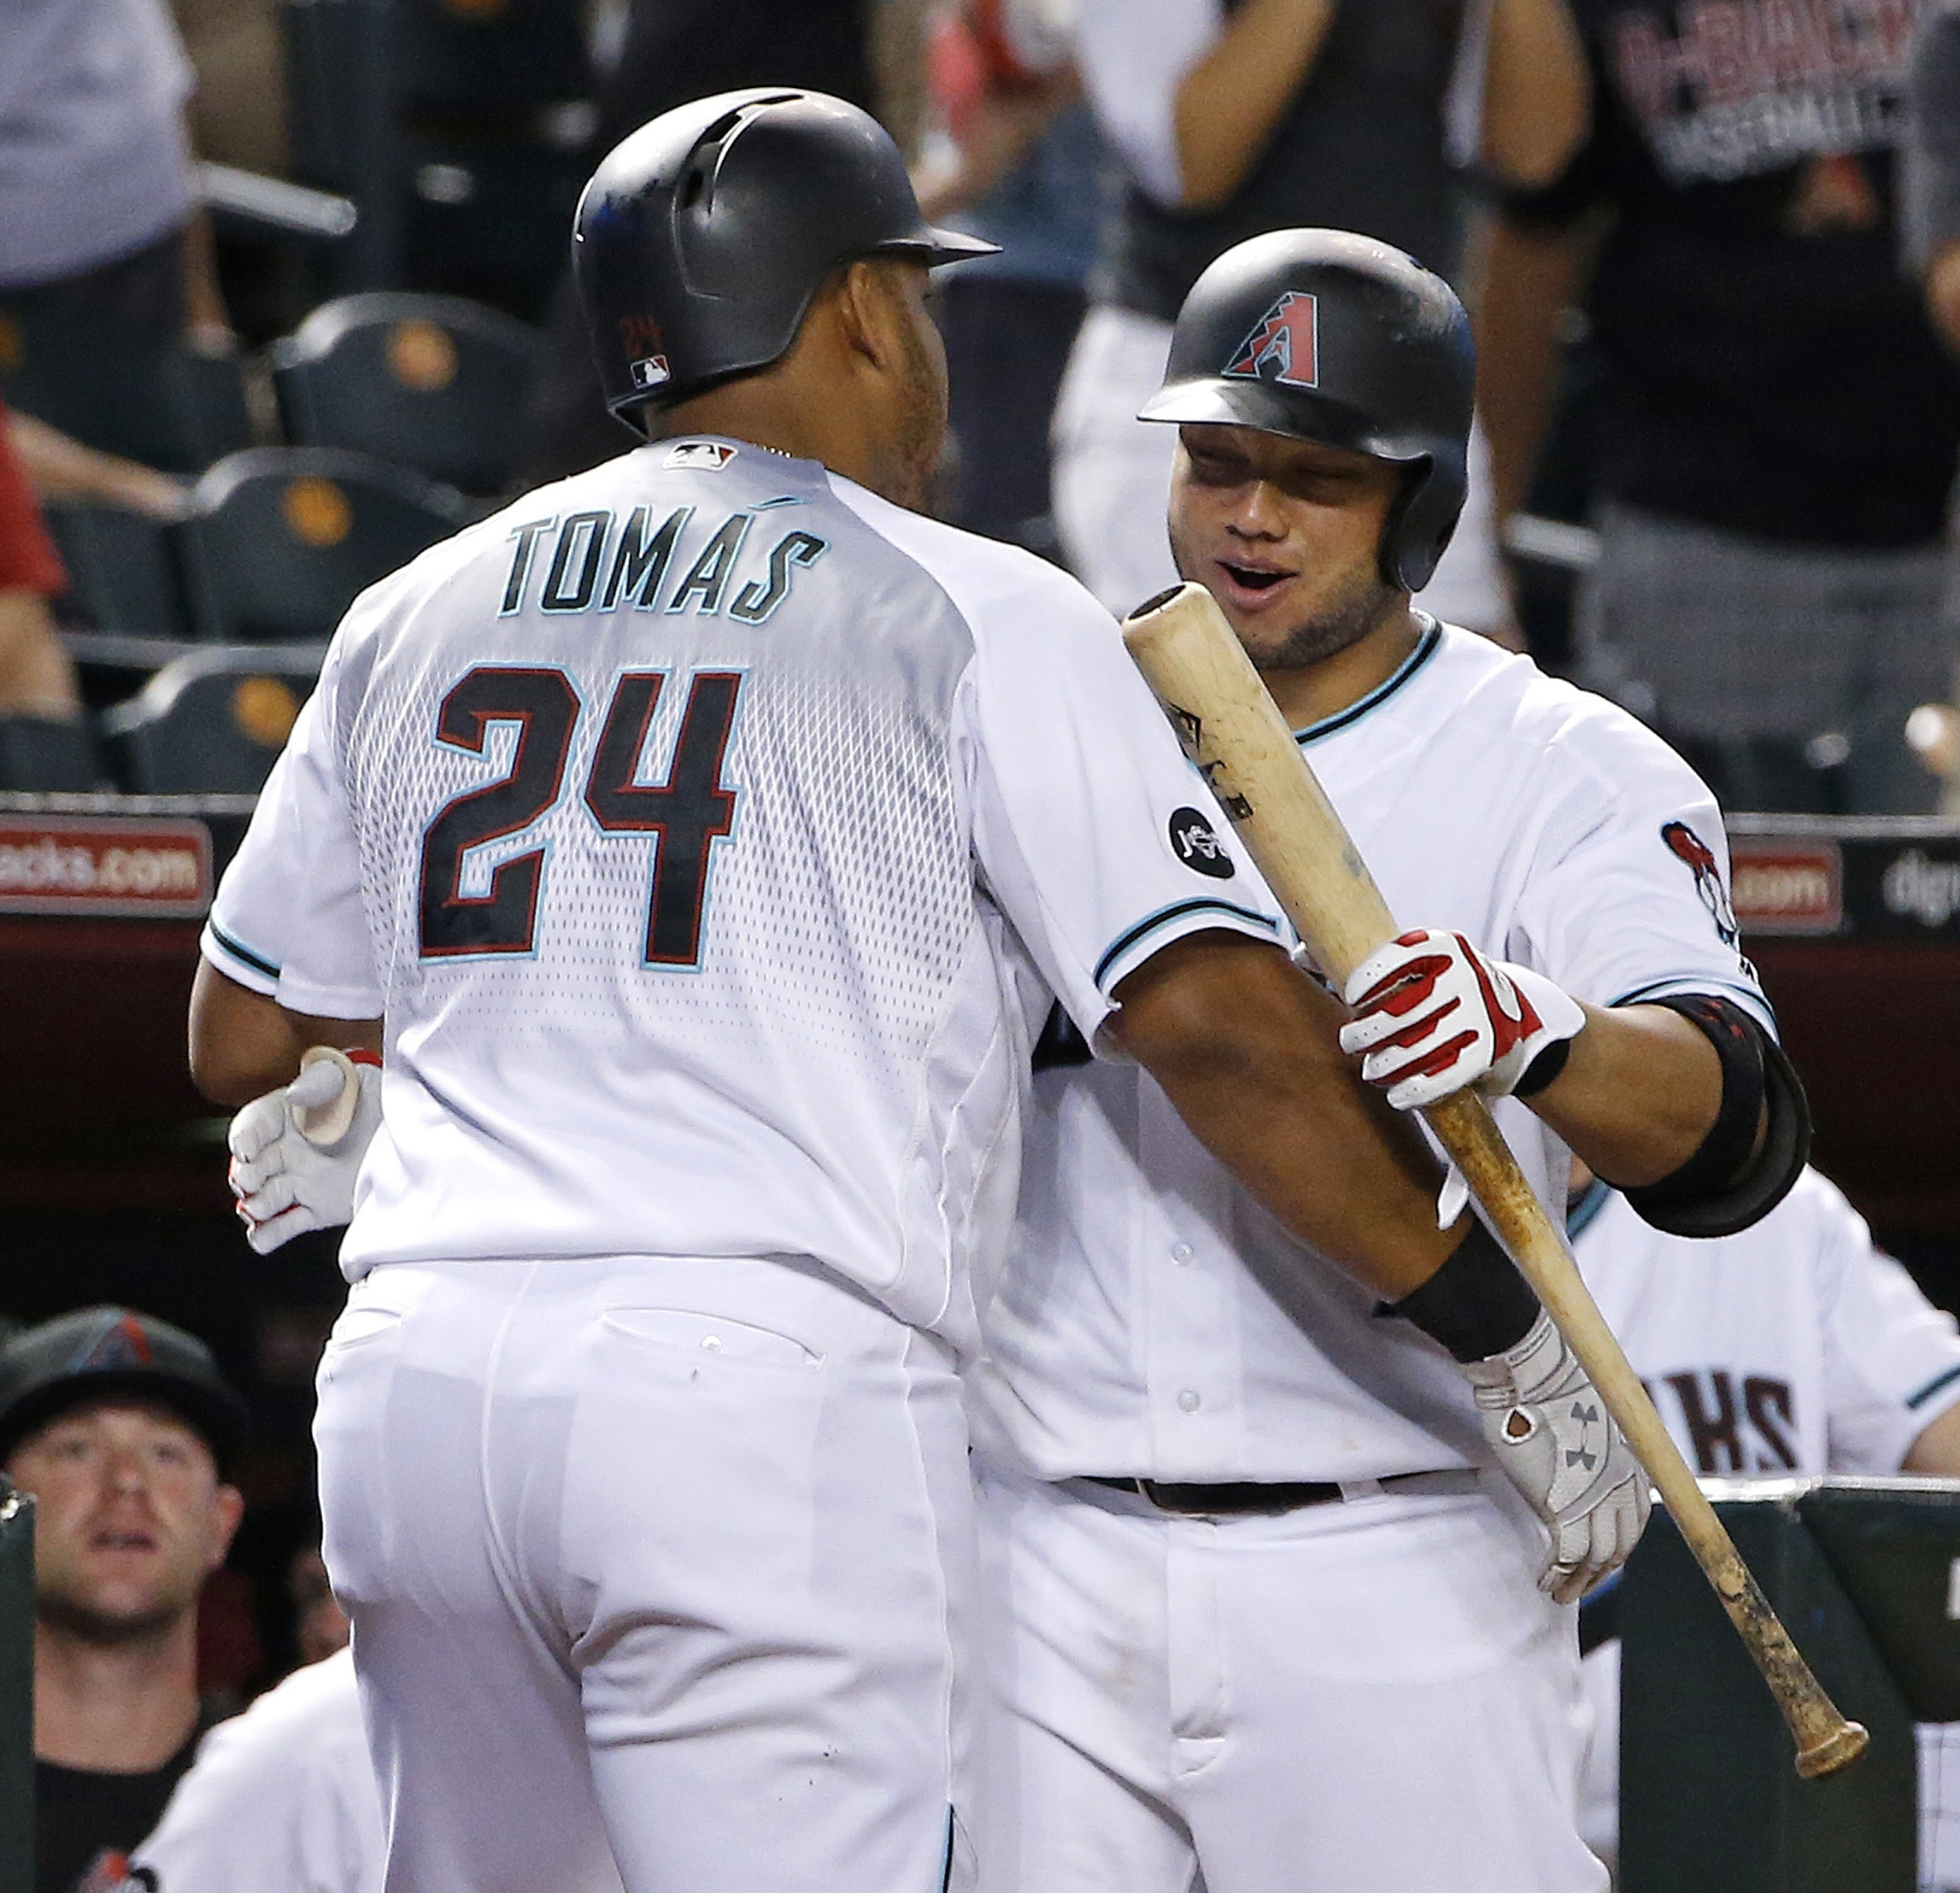 Arizona Diamondbacks' Yasmany Tomas (24) celebrates his home run against the Milwaukee Brewers with Welington Castillo, right, during the fourth inning of a baseball game Friday, Aug. 5, 2016, in Phoenix. Tomas had another home run in the second inning. (